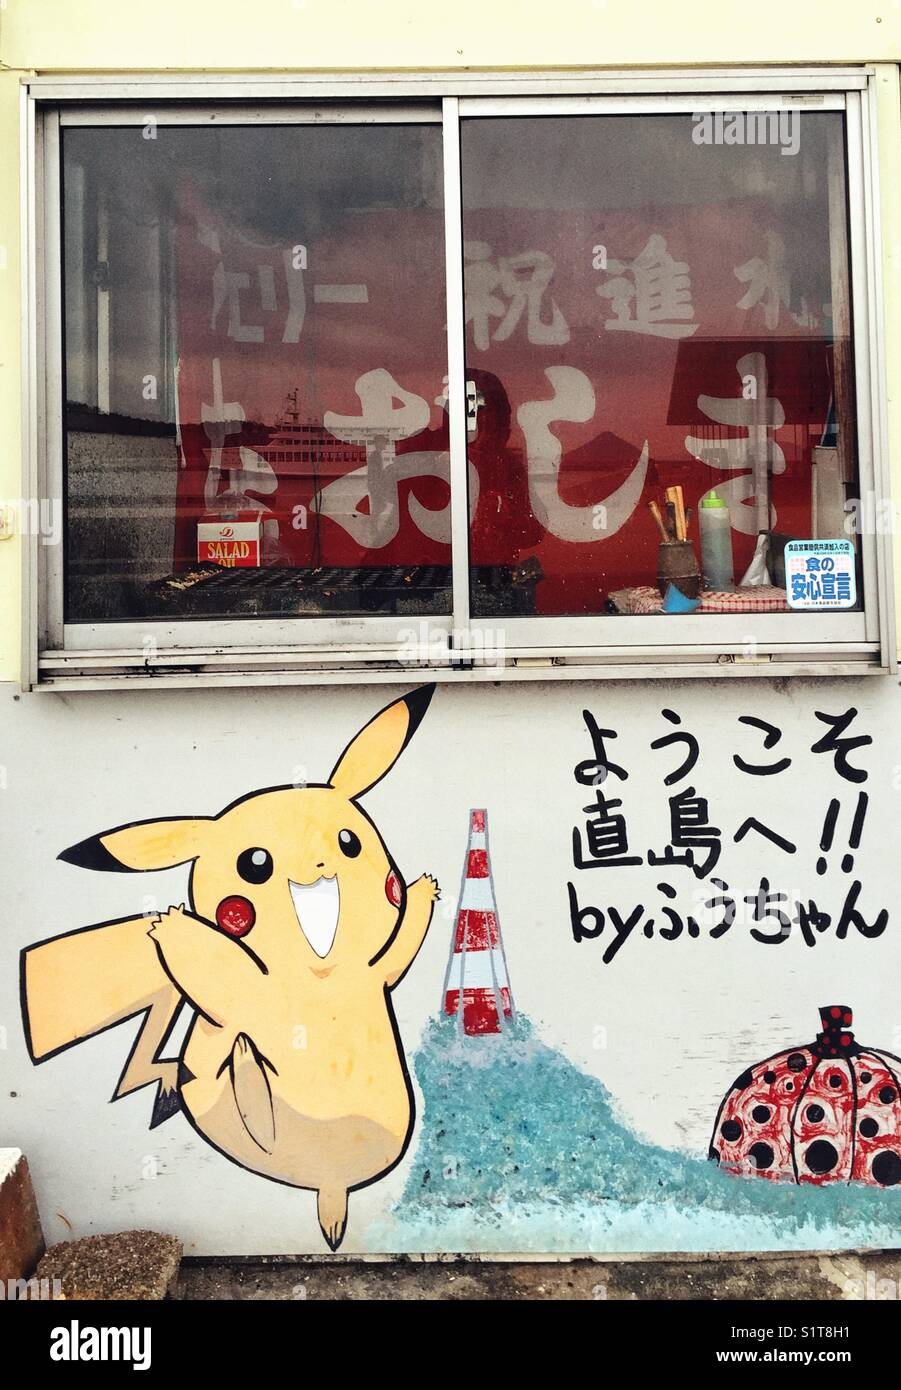 Fast food window with Pikachu  character and Kusama's pumpkin painted on the wall. Naoshima island, Japan - Stock Image